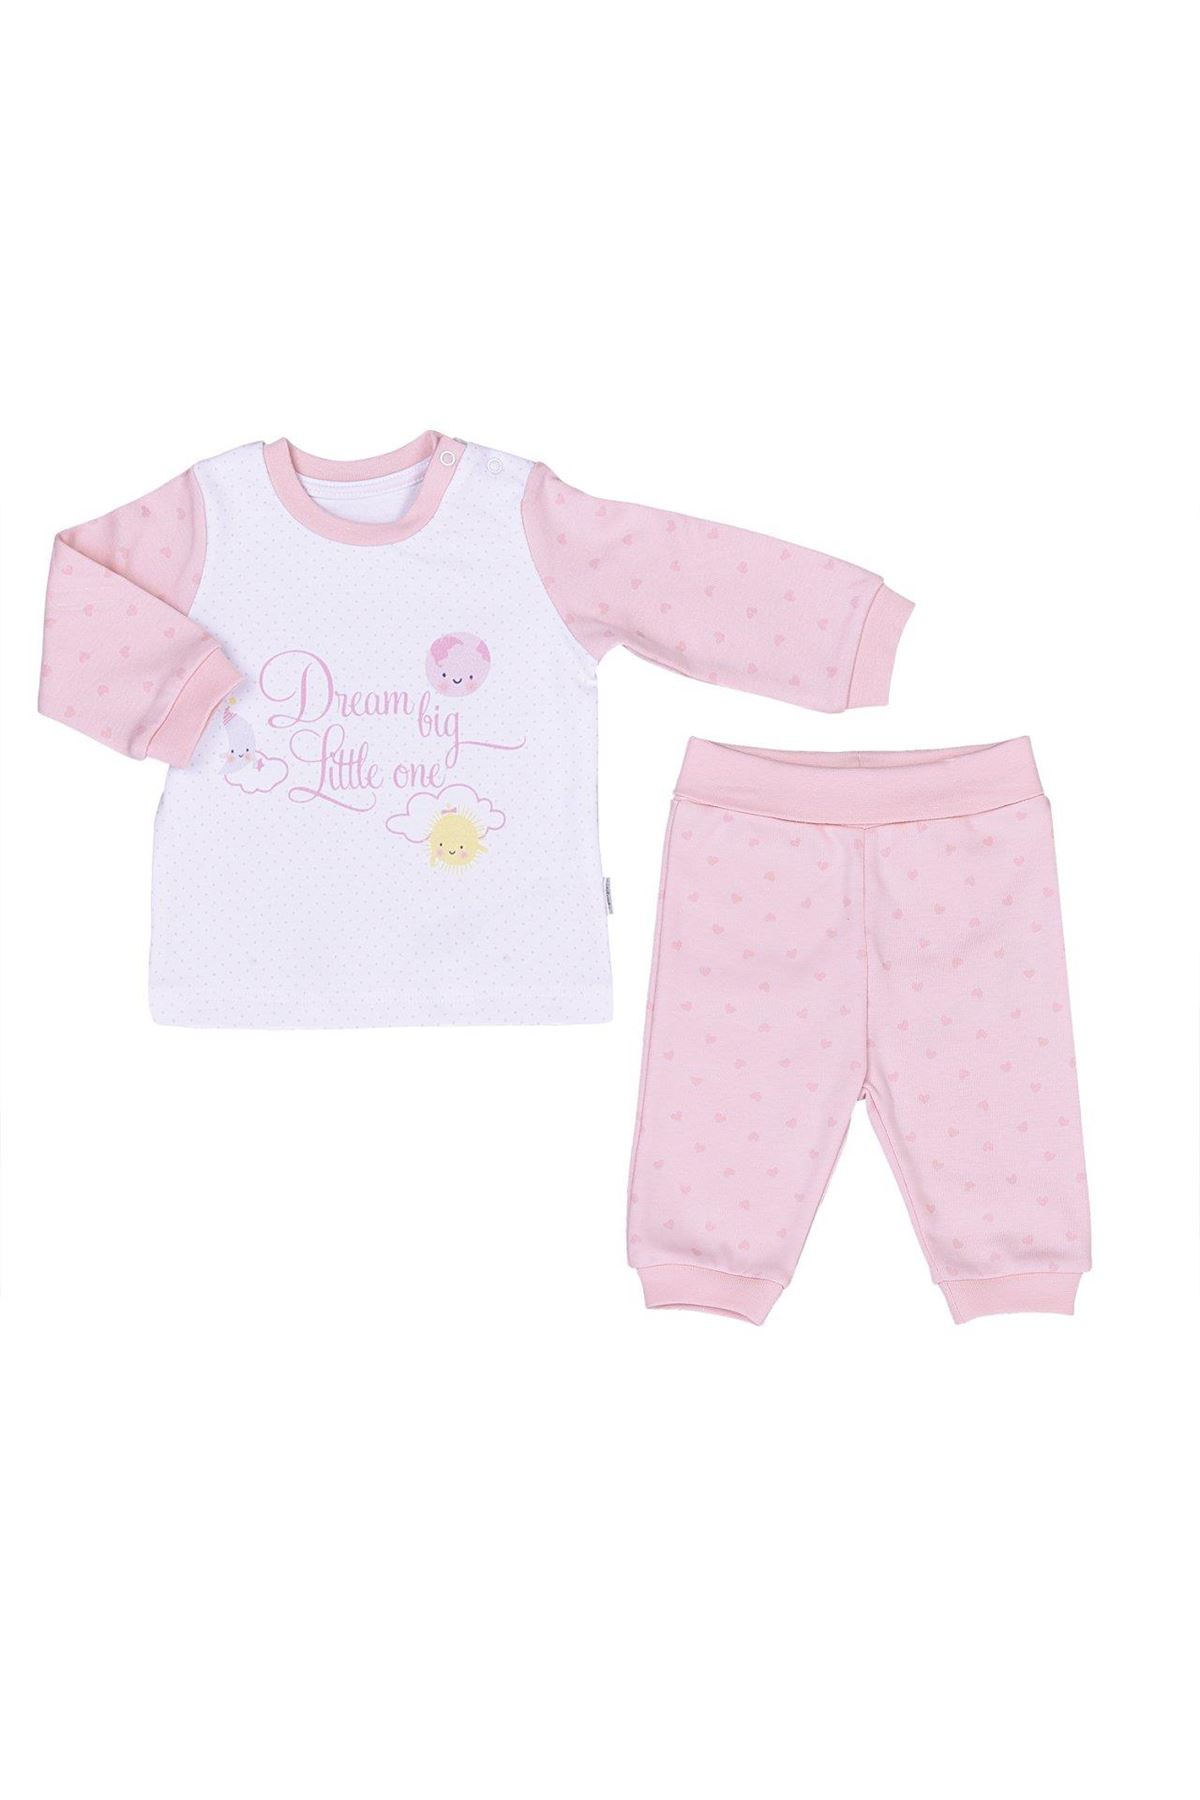 KitiKate Organik Dreams Big Little One 2'li Takım 59175 Pembe